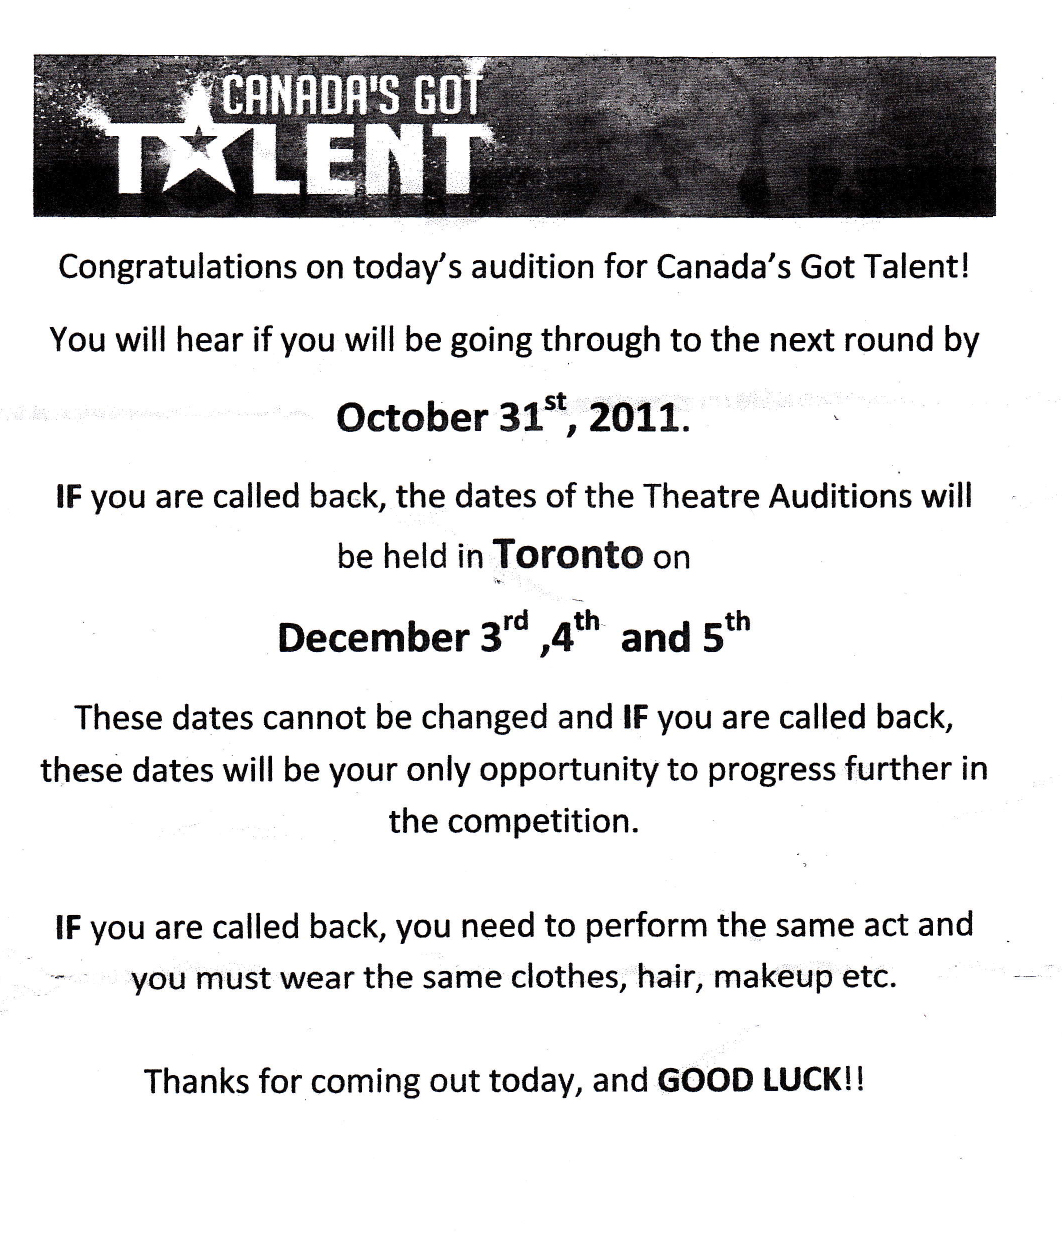 Canada's Got Talent Audition Certificate (2011 season)